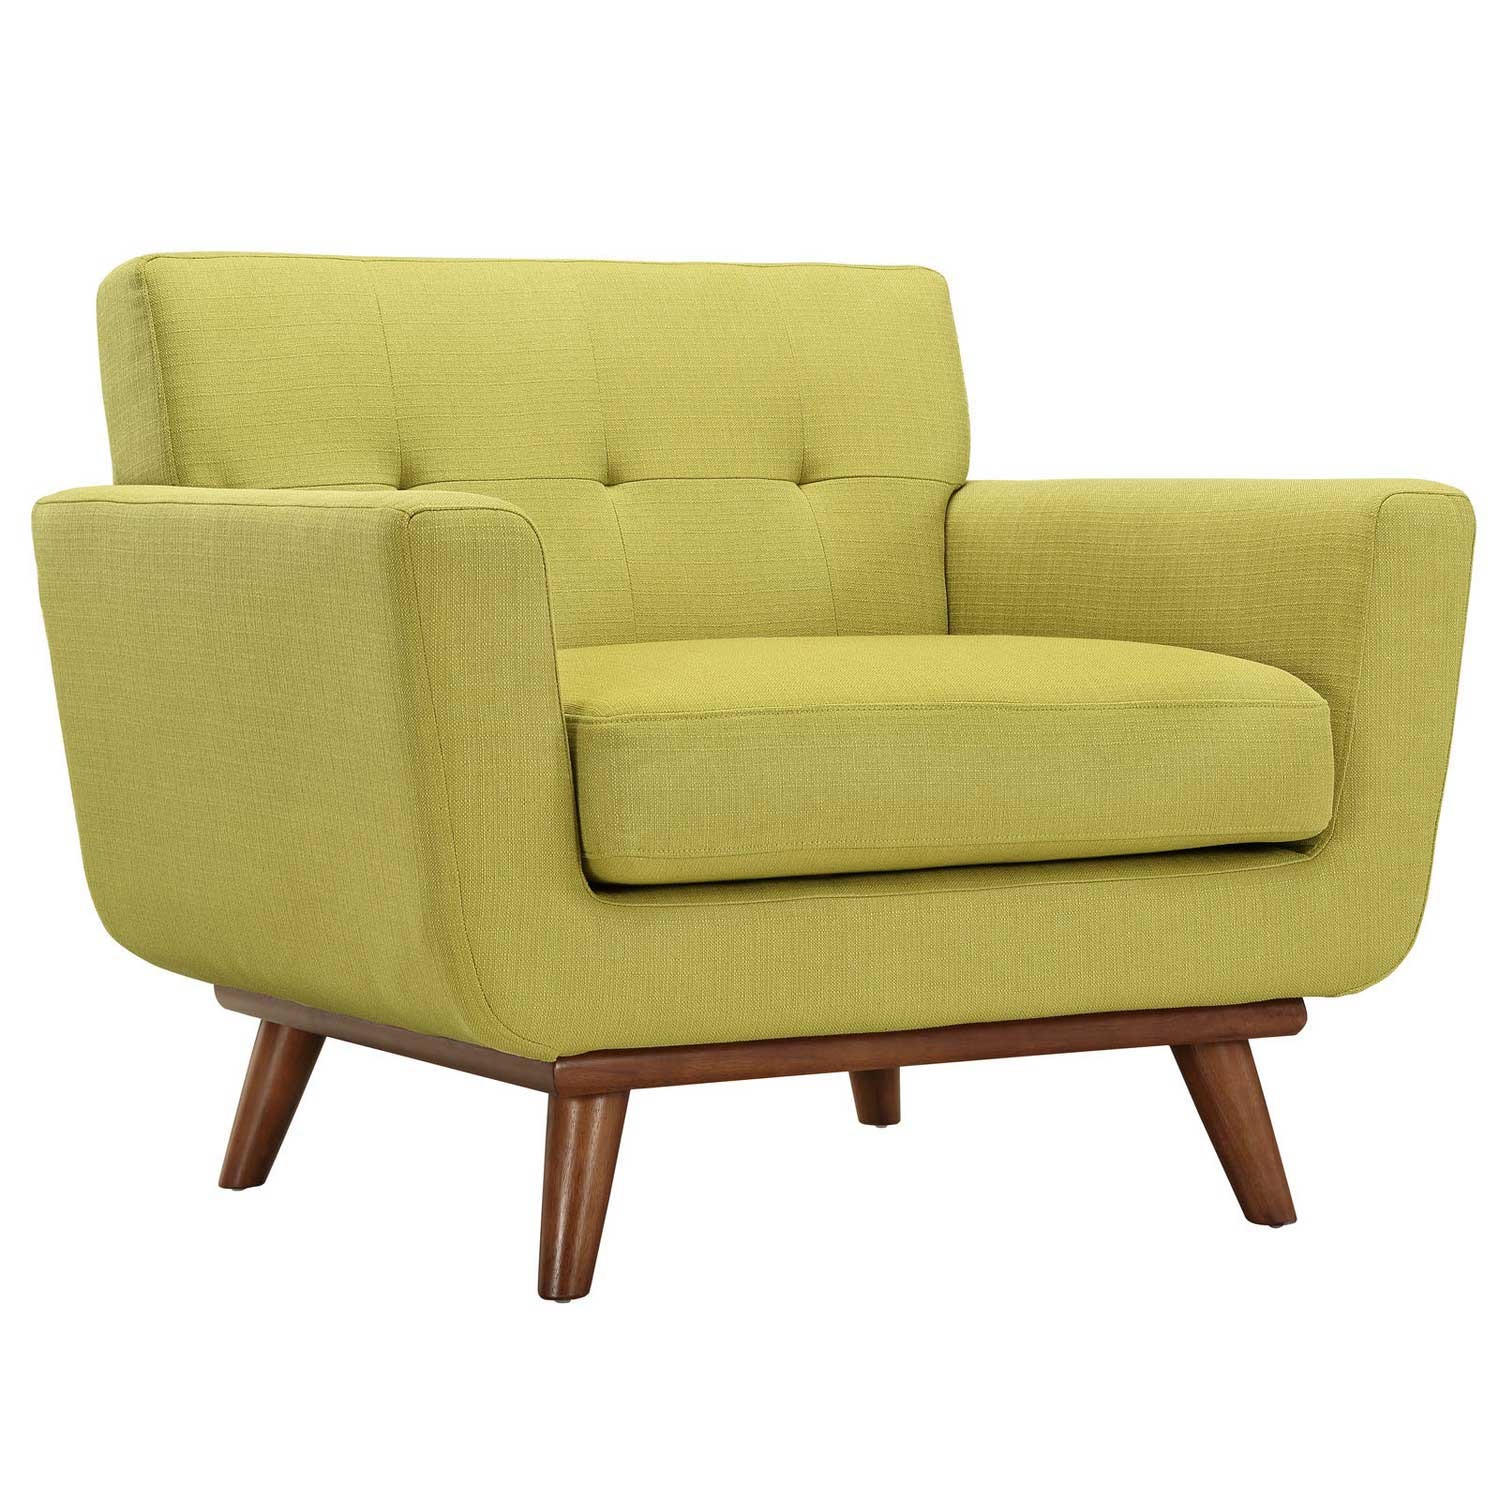 Modway Engage Armchair and Sofa Set of 2 - Wheatgrass